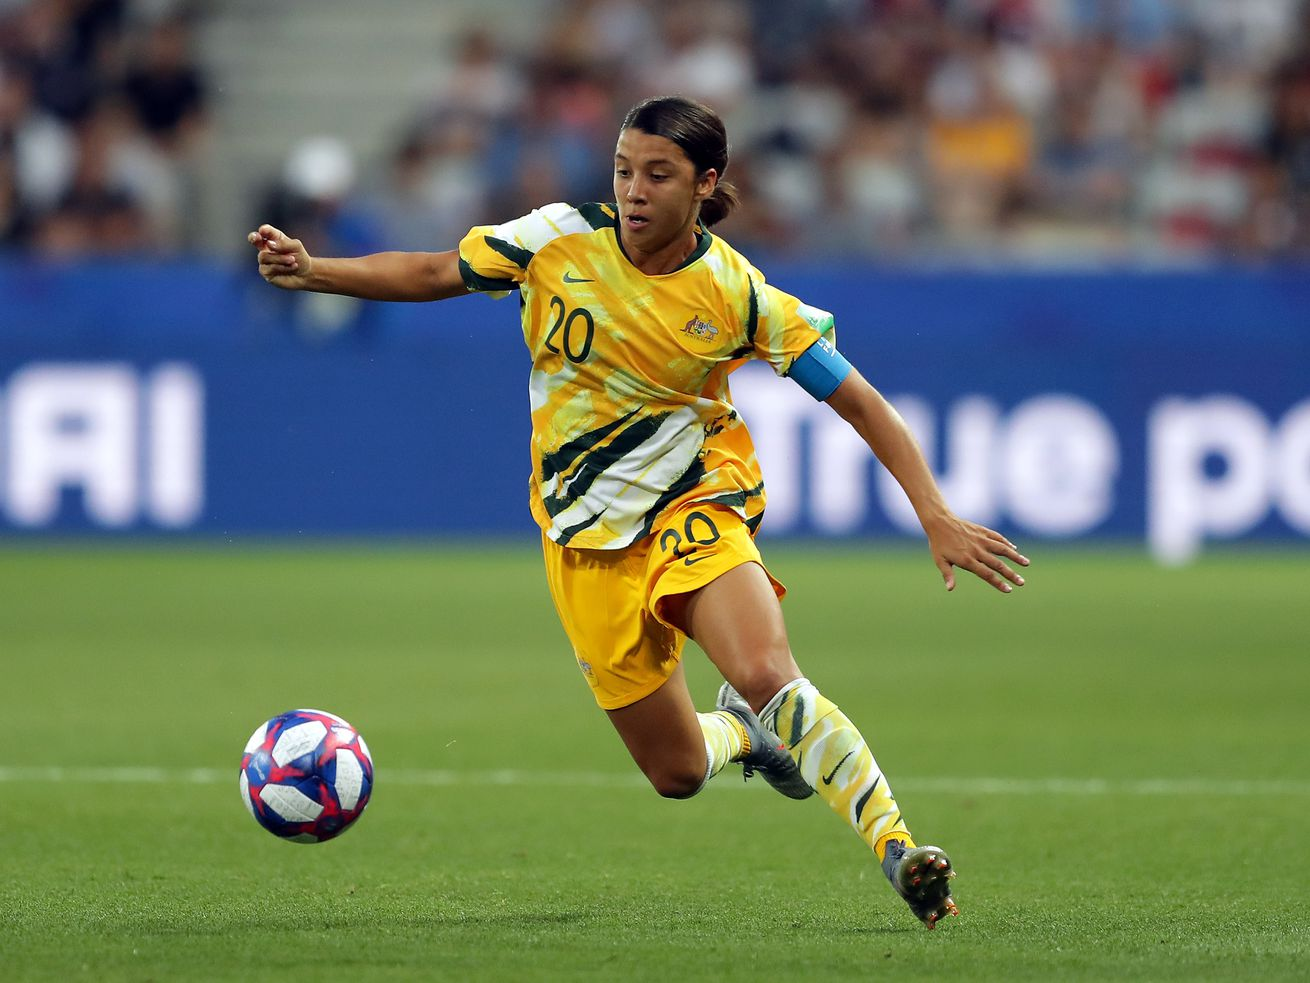 Sam Kerr of Australia runs with the ball during the 2019 FIFA Women's World Cup France Round Of 16 match between Norway and Australia at Stade de Nice on June 22, 2019 in Nice, France.